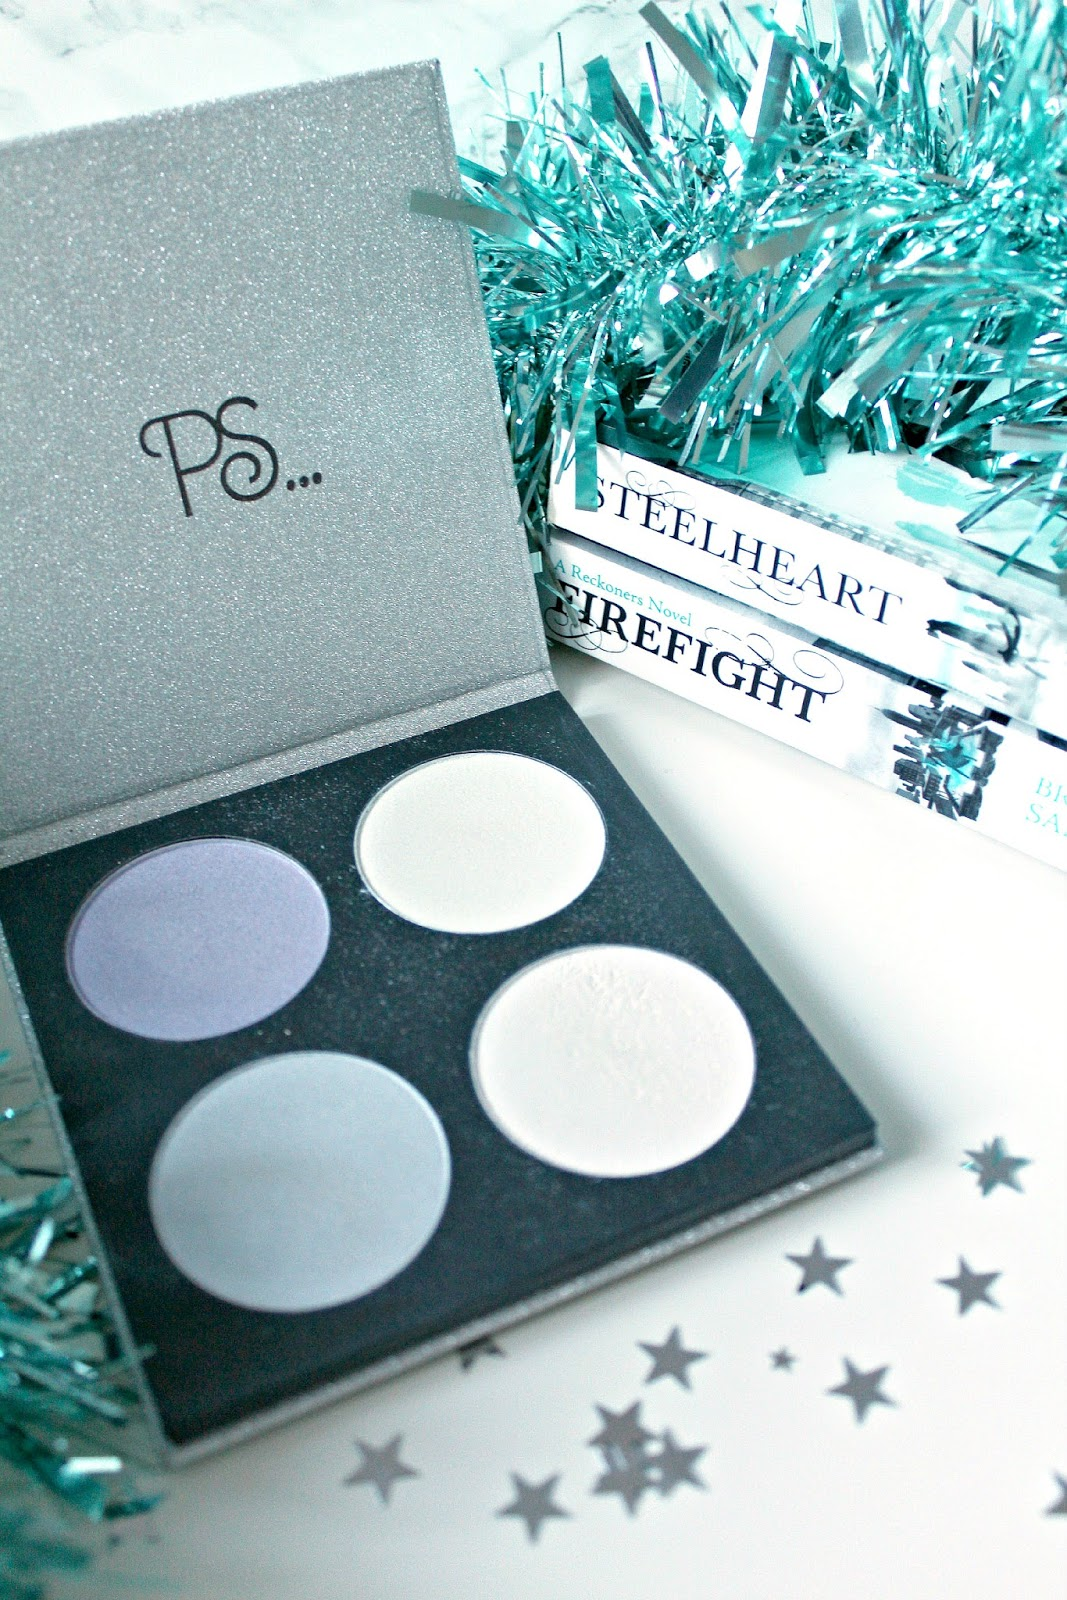 primark lunar glow highlight palette review